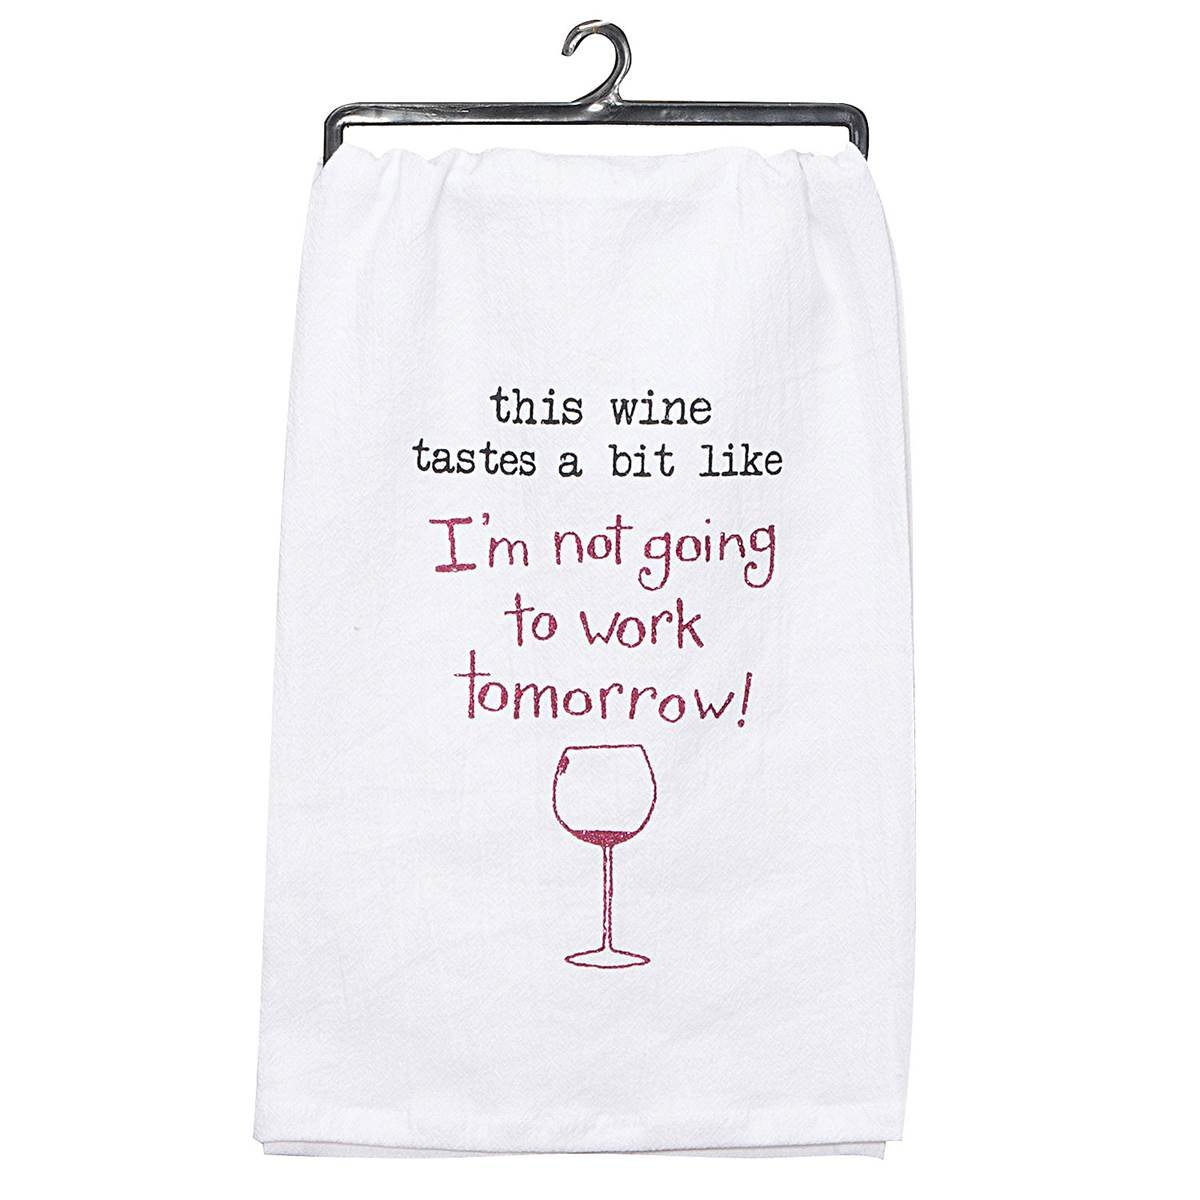 Set of 6 Wine Enthusiast Decorative Cotton Kitchen Dish Towel 26'' x 26'' by Kay Dee